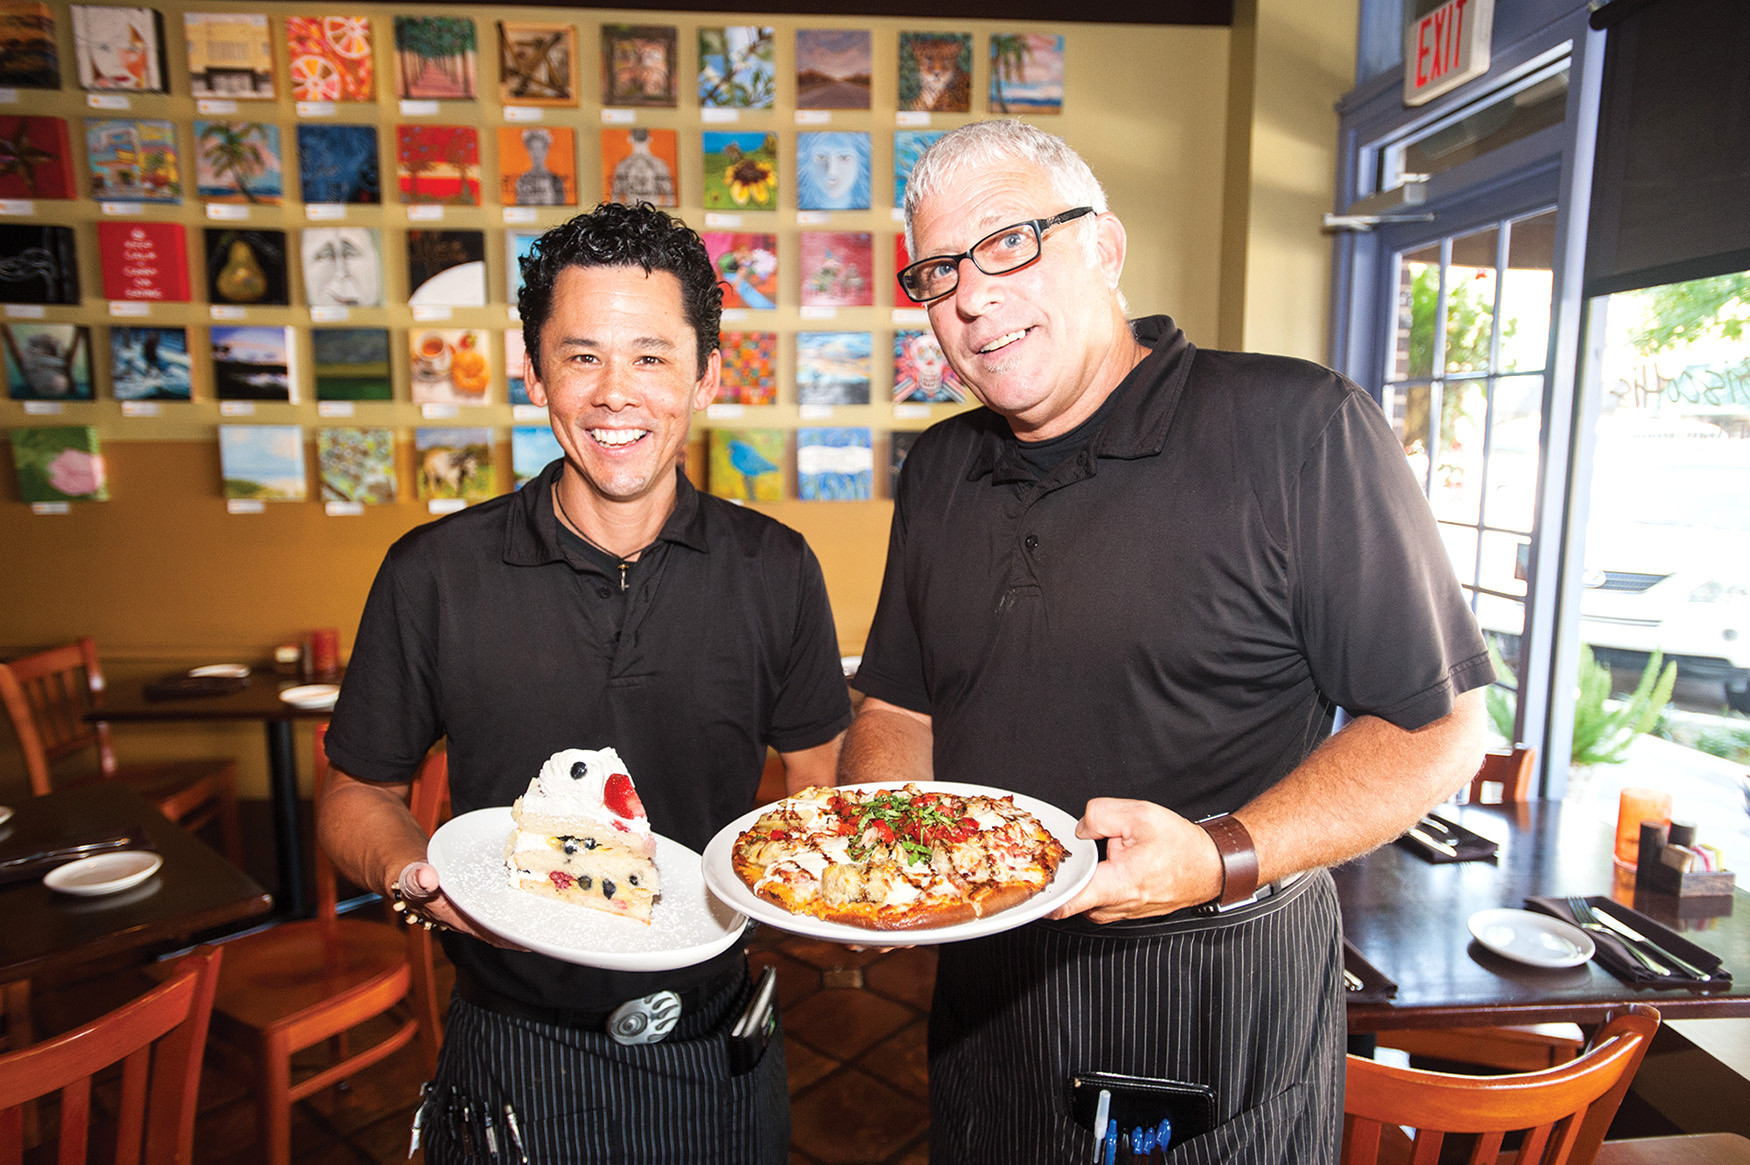 Biscottis servers Danny Stimson and Steve Pulsifer show off the mixed berry custard cake and the artichoke and prosciutto pizza in Avondale.